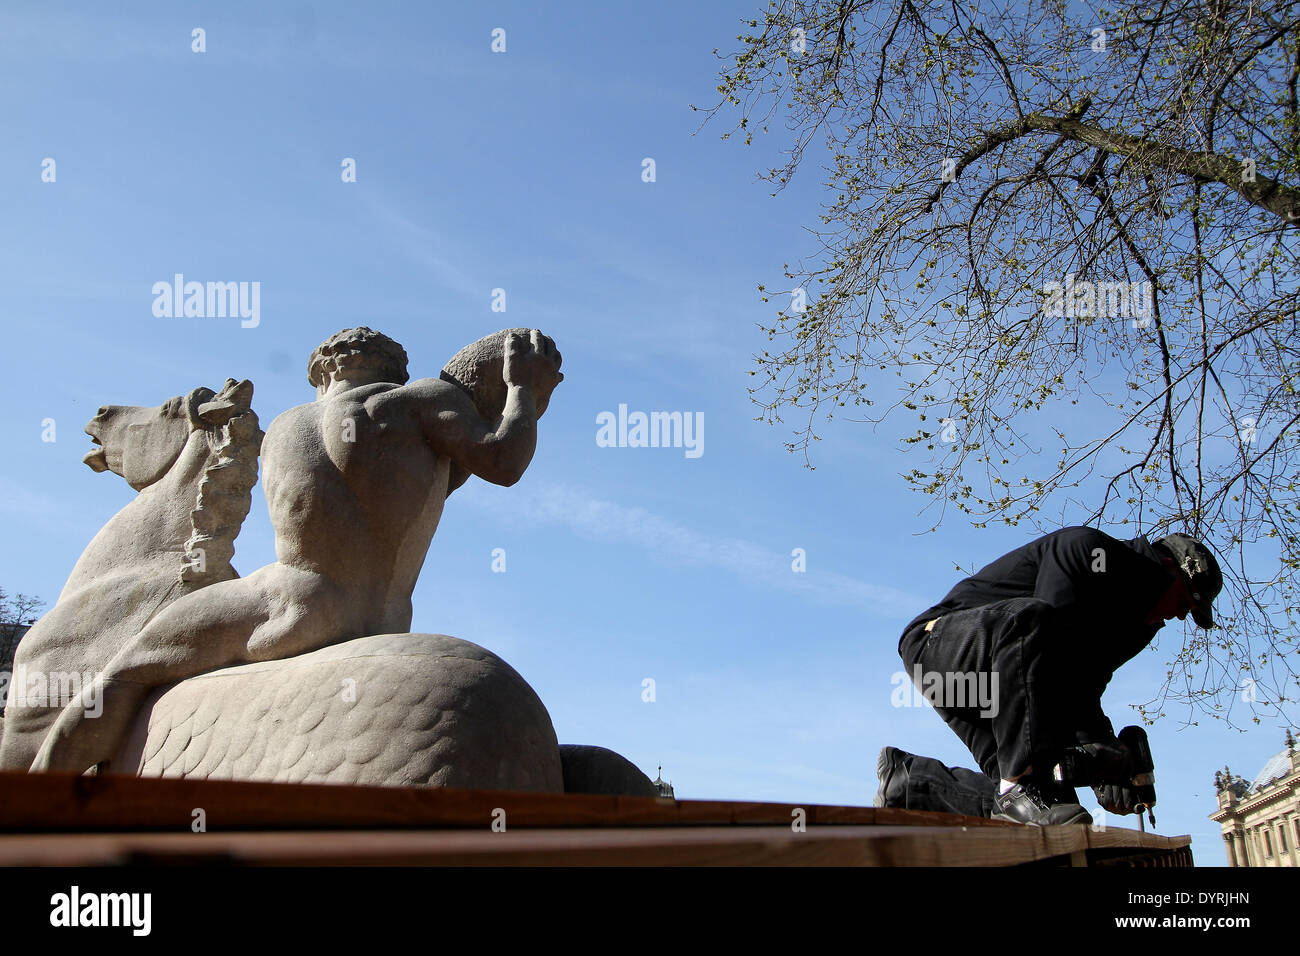 Removing the covering on Wittelsbach Fountain in Munich, 2012 - Stock Image